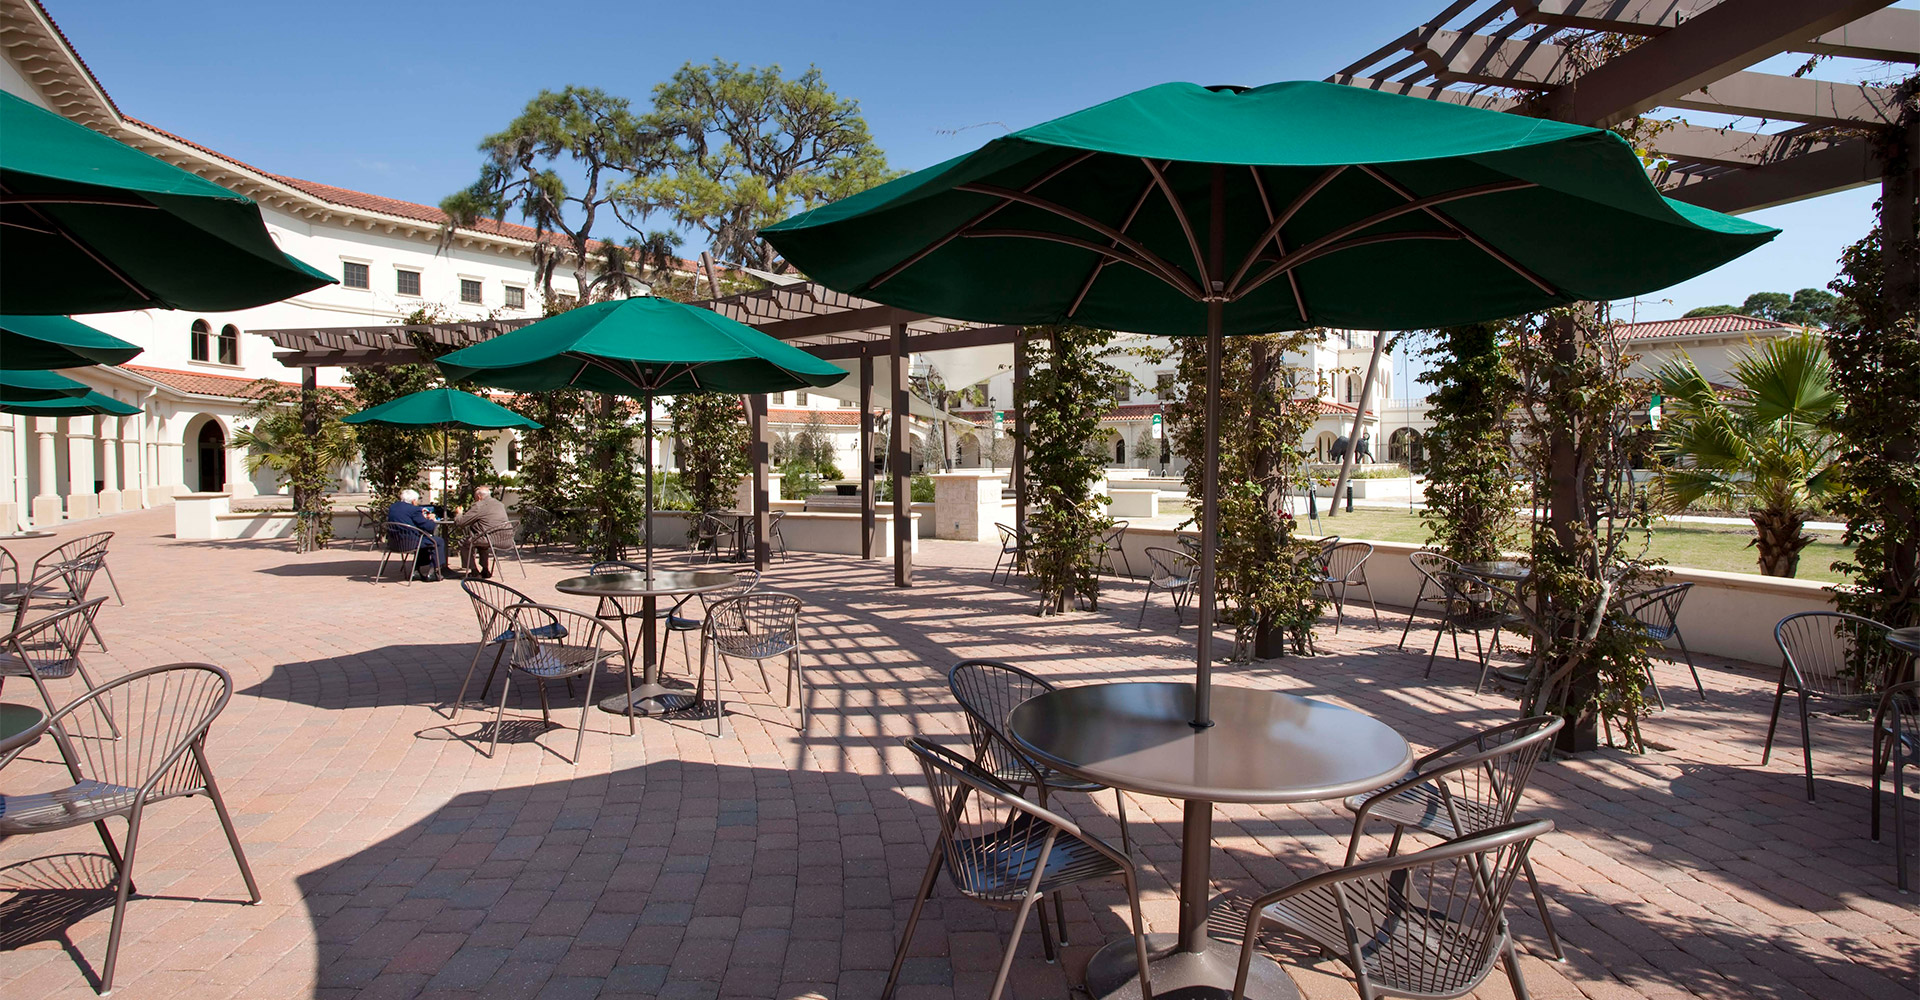 USF Student Courtyard Renovation.